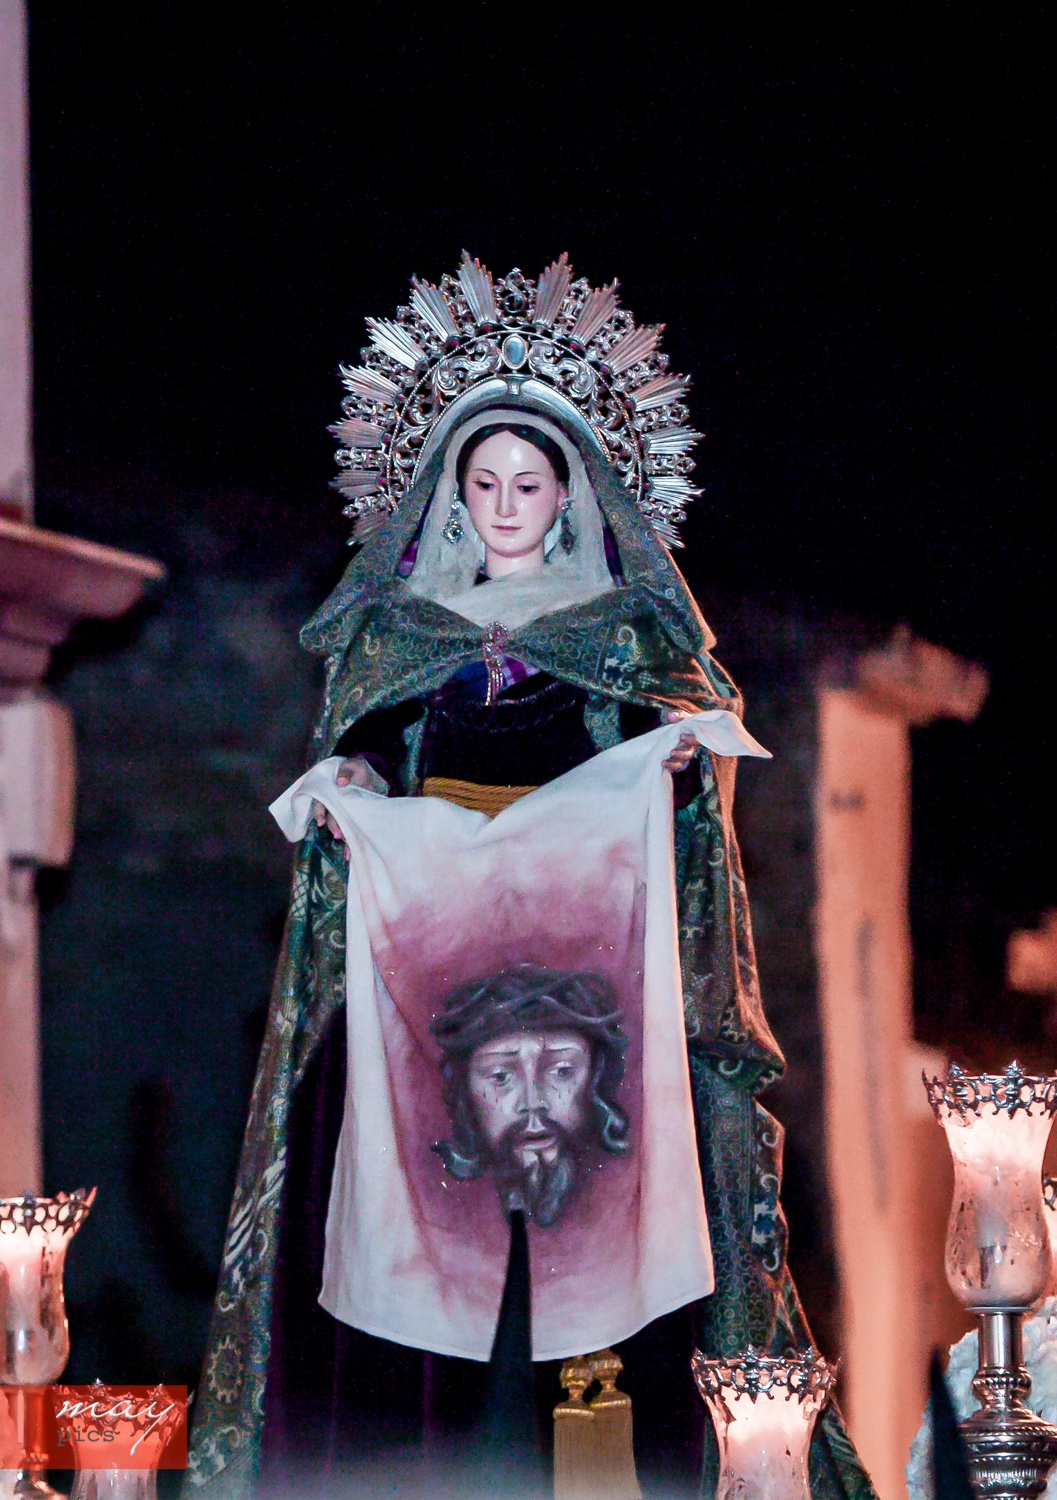 06Dolores_MG_9644